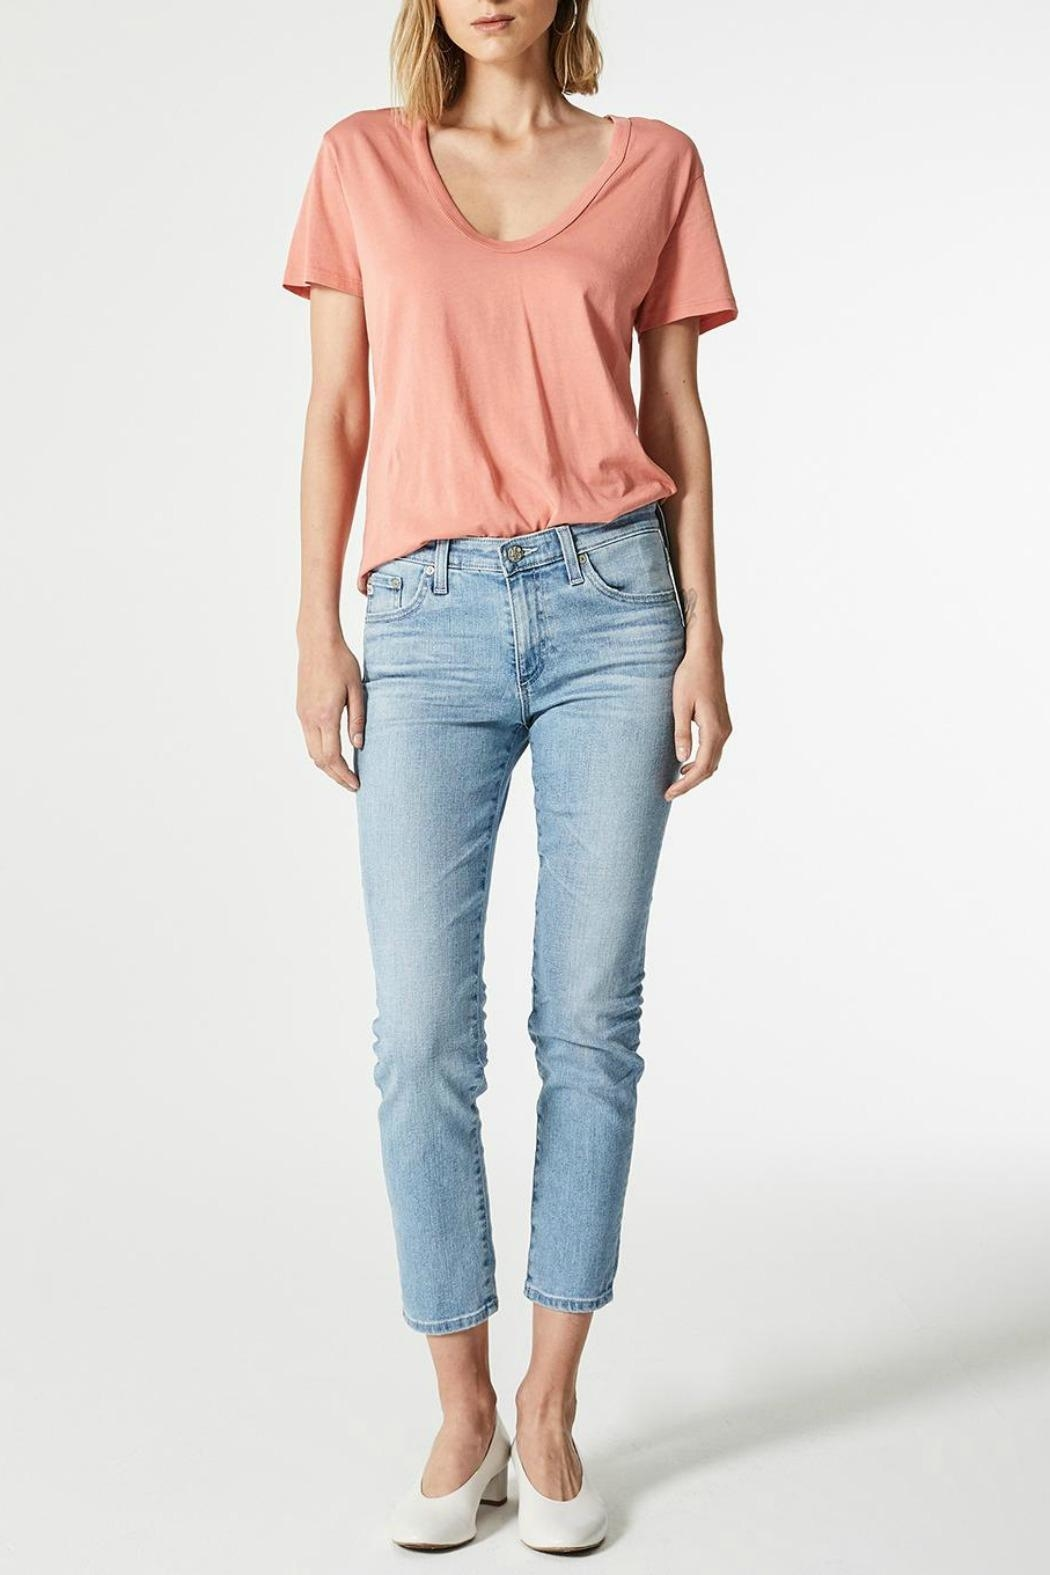 1d43a29059e AG Jeans The Prima Crop from Orange County by Jeanni Champagne ...